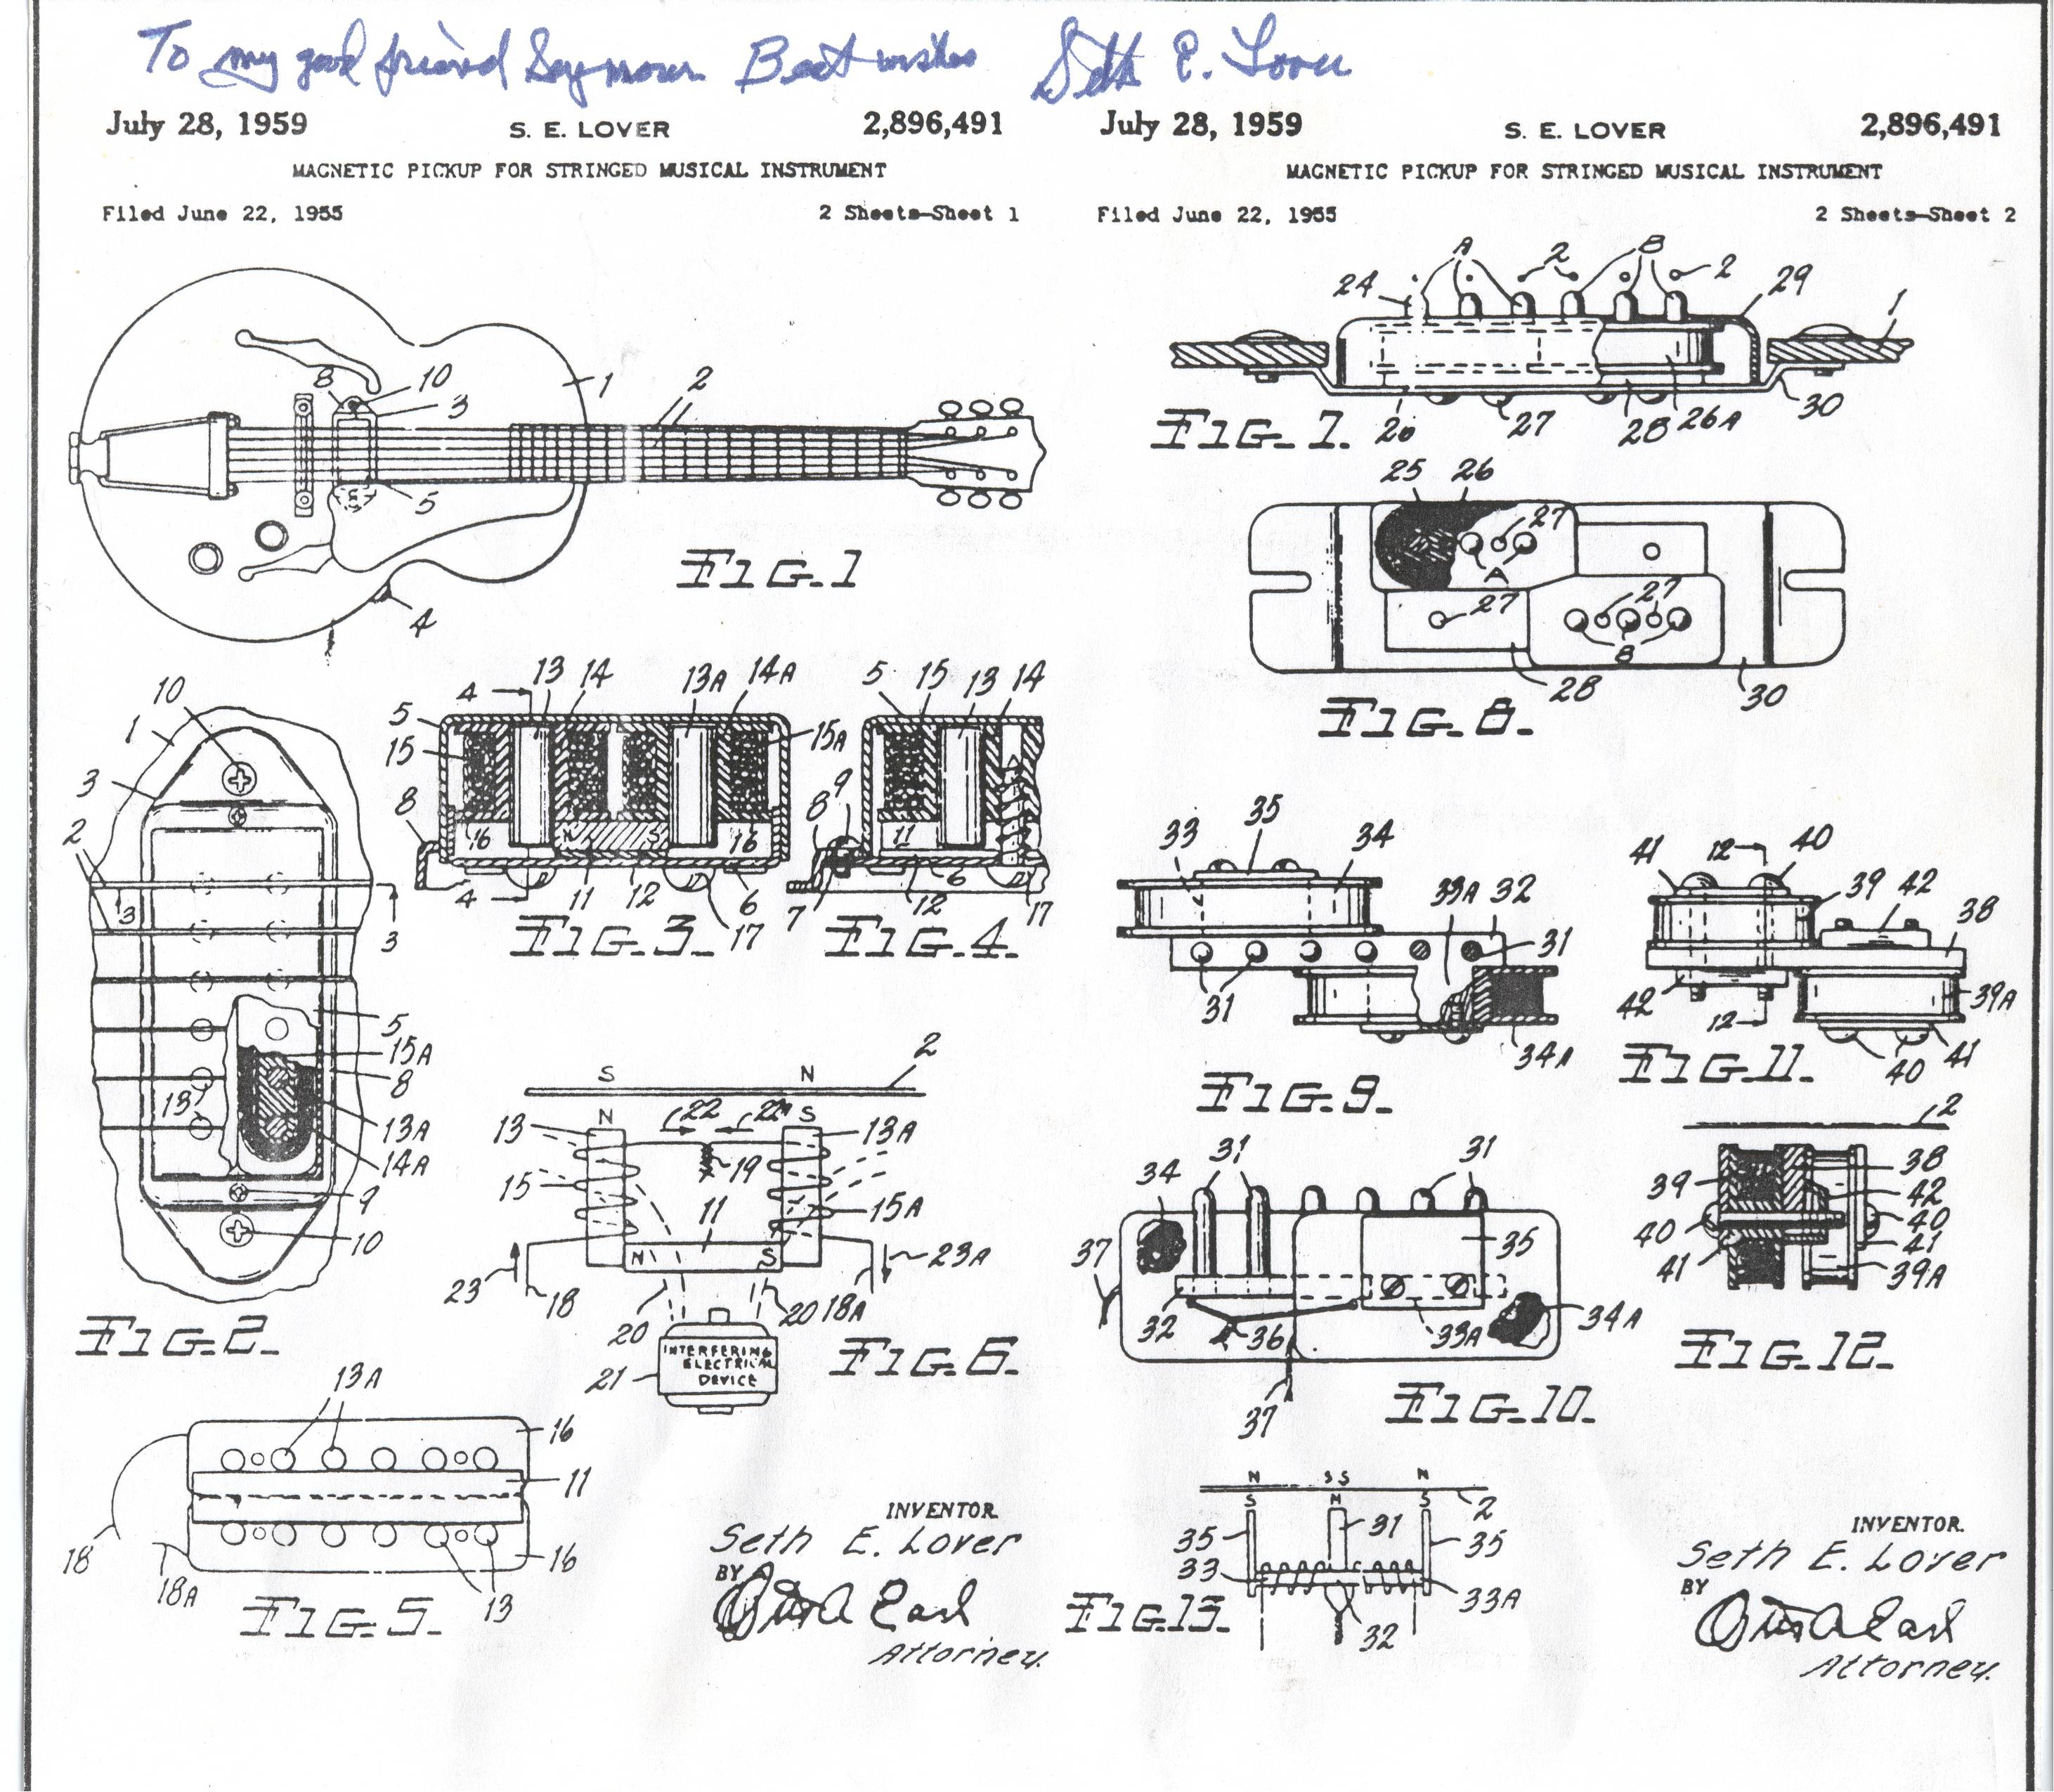 Gibson Es 175 Wiring Diagram Library Vintage Diagrams Seth Lover Interview 1978 Paf Humbucking Humbucker Pickups Guitars